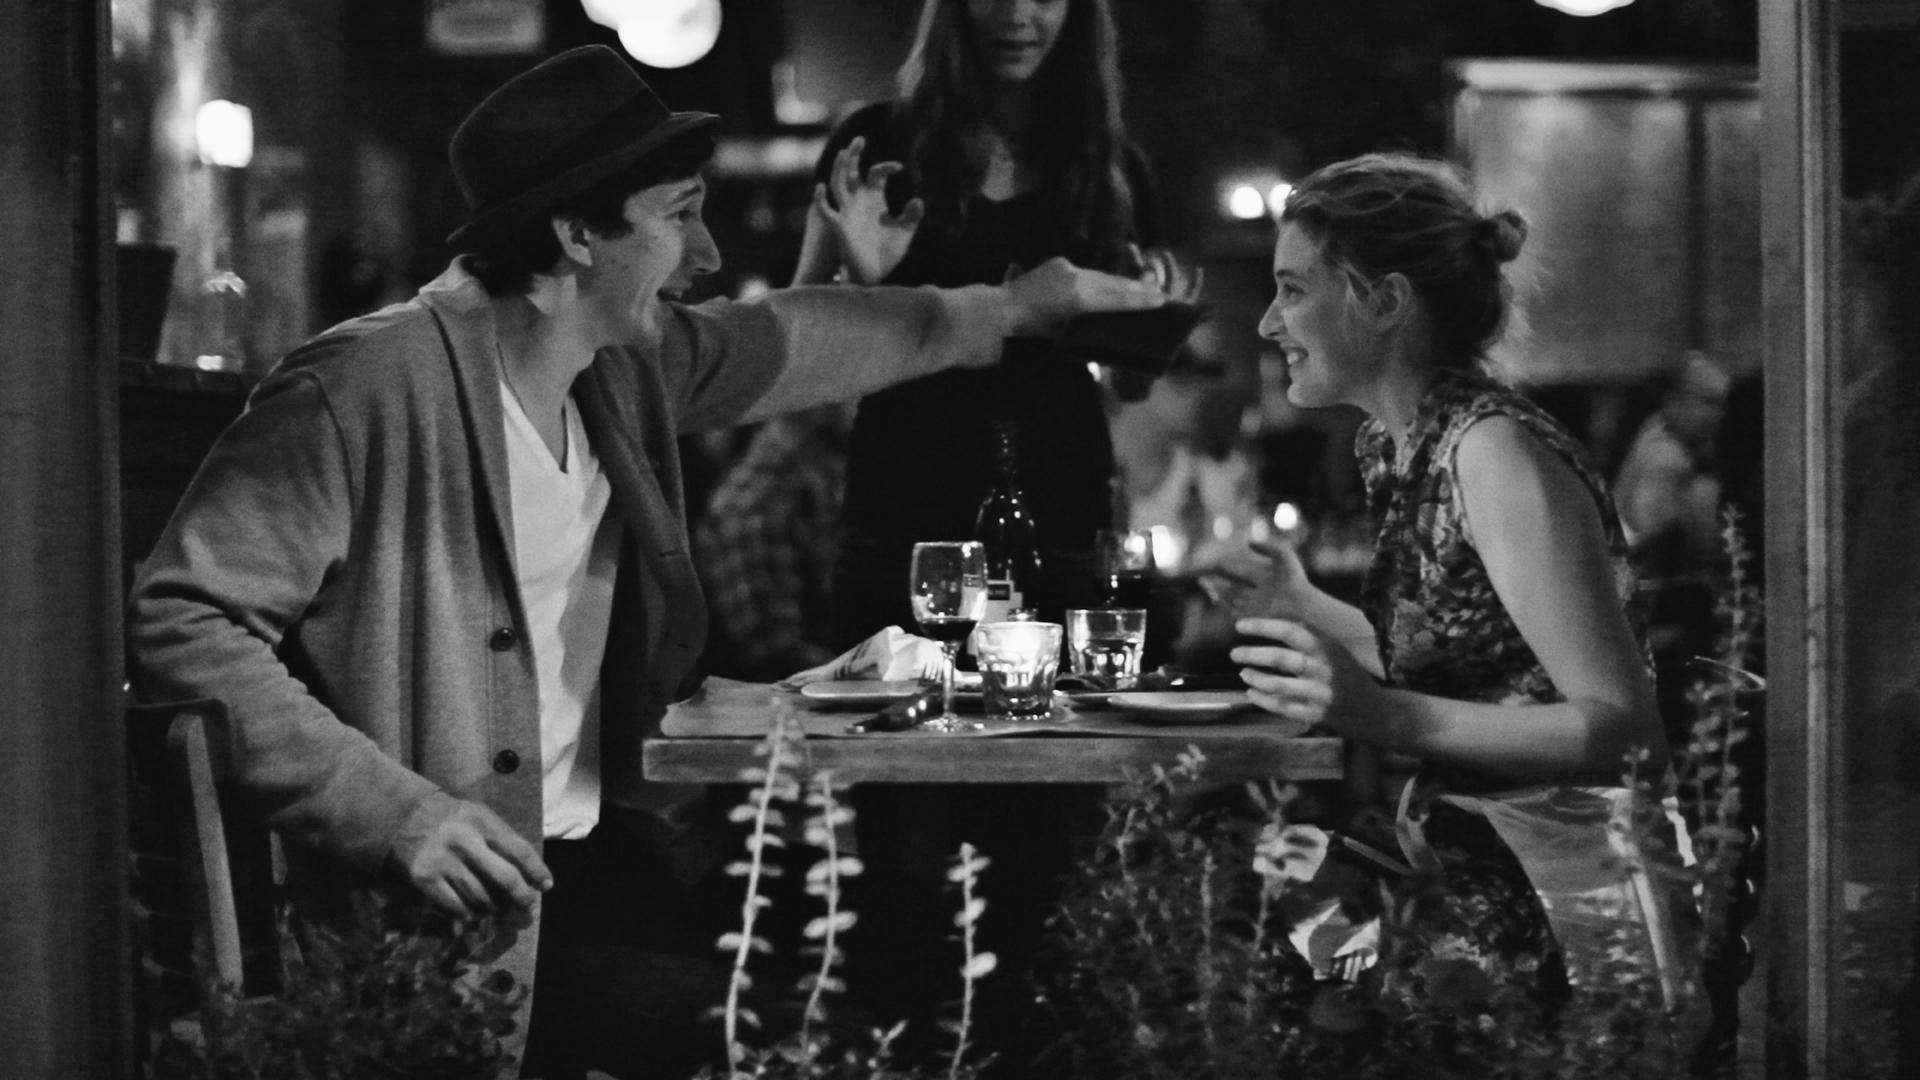 New-movie tip: skip the fury and the hangover, and go see 'Frances Ha'